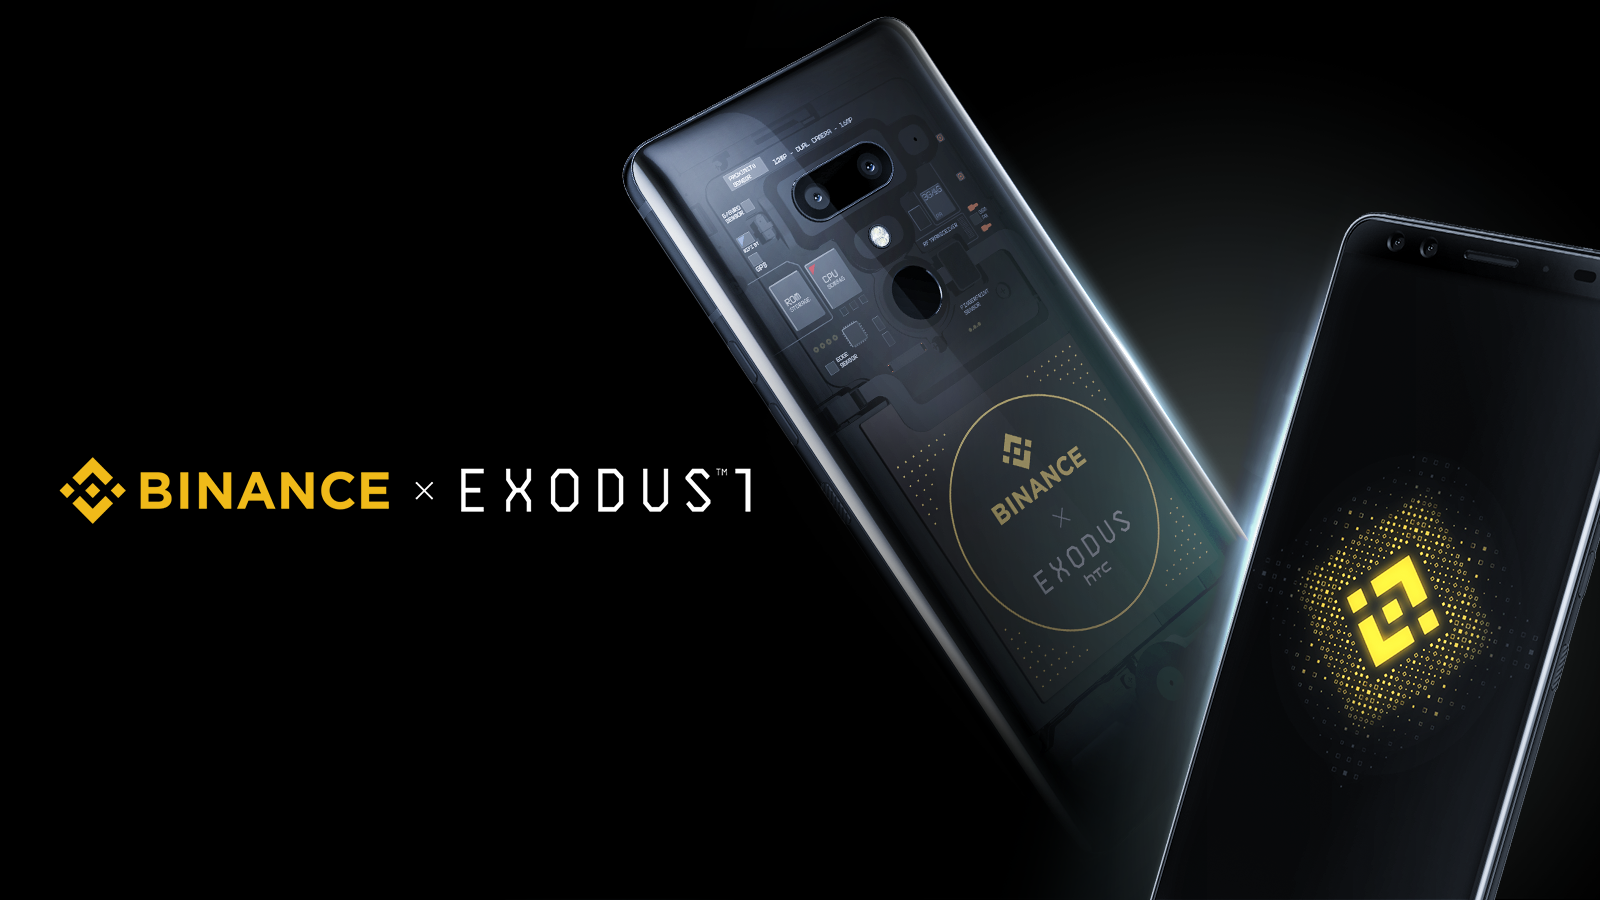 HTC exodus Binance edition crypto smartphone